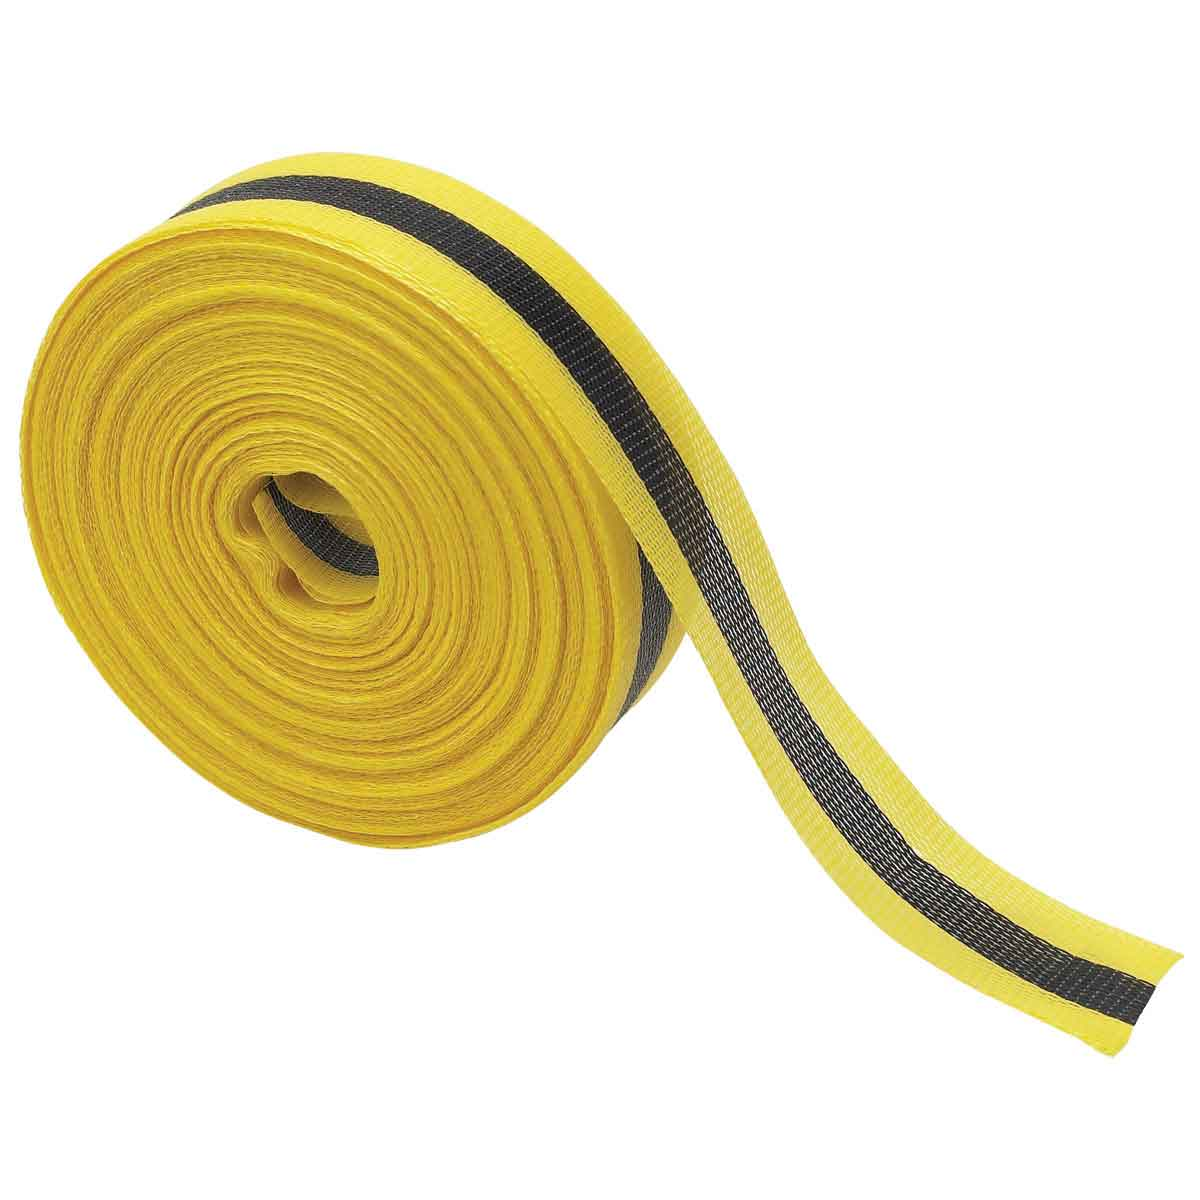 Brady® 91176 Woven Barricade Tape, Black on Yellow, 2 in W x 200 ft L, Horizontal Warning Stripes, Polypropylene